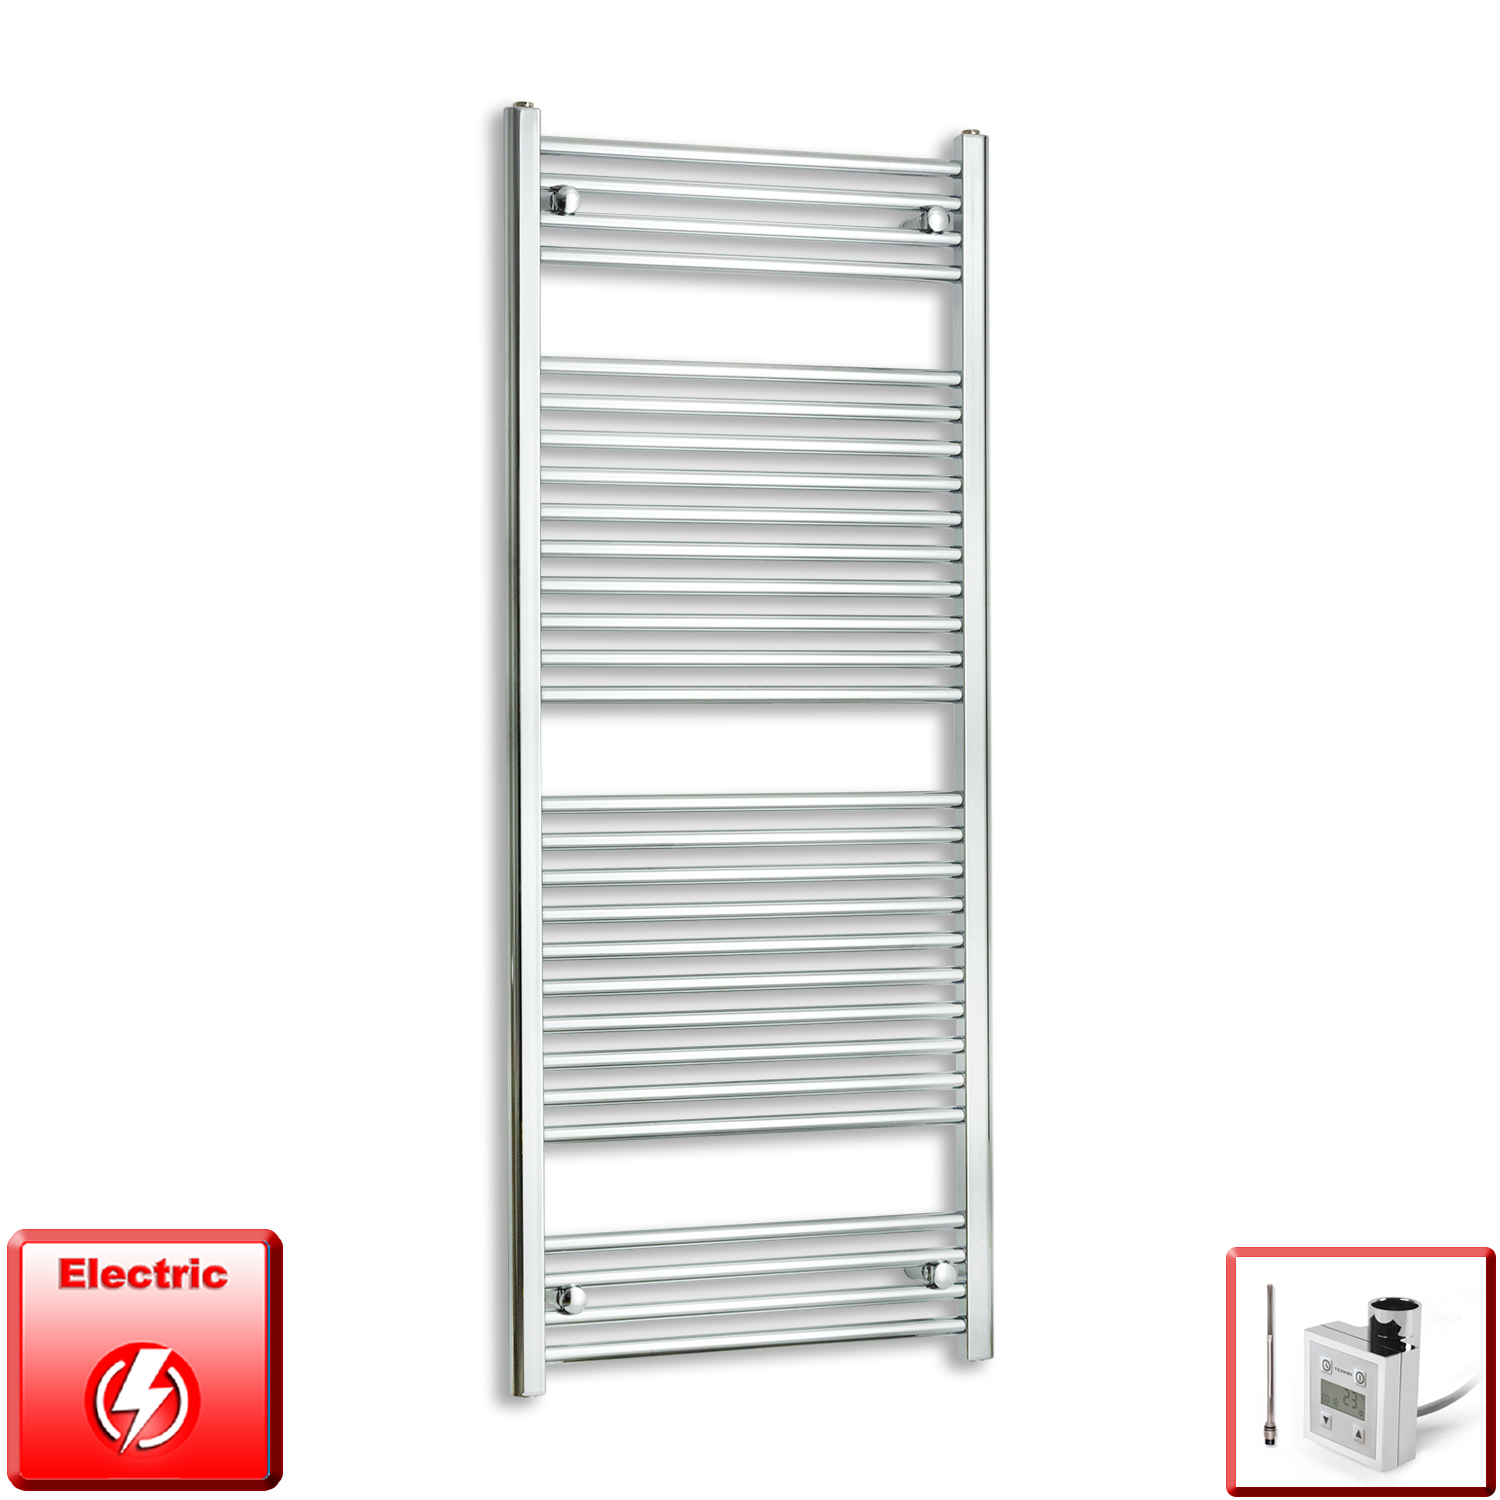 600mm Wide 1500mm High Pre-Filled Chrome Electric Towel Rail Radiator With Thermostatic KTX3 Element